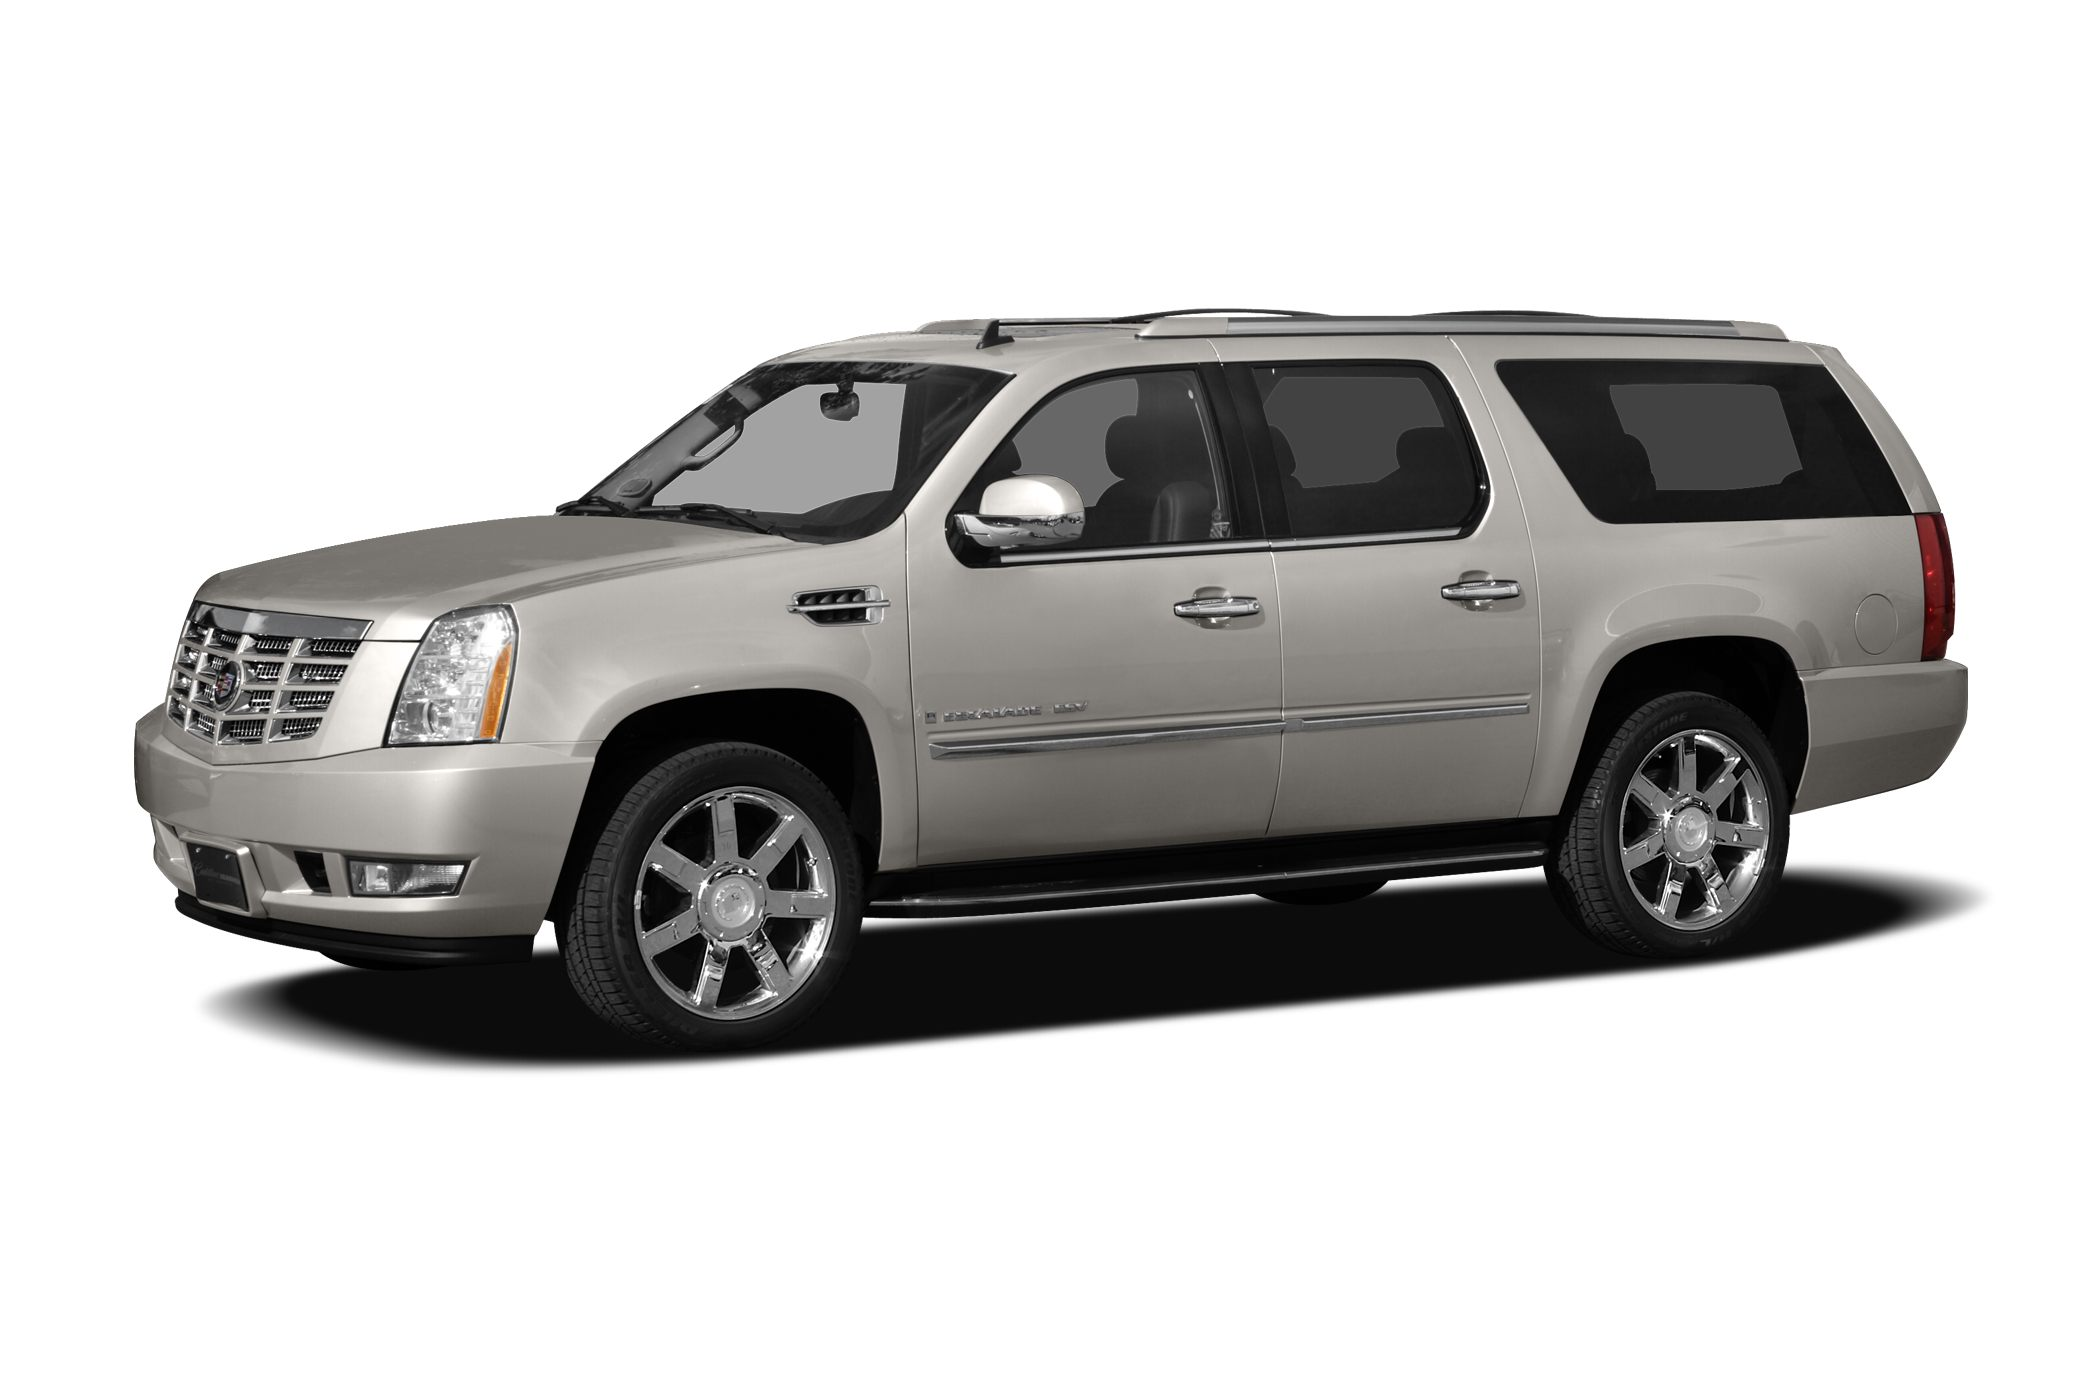 2007 Cadillac Escalade ESV SUV for sale in Fort Worth for $18,995 with 129,369 miles